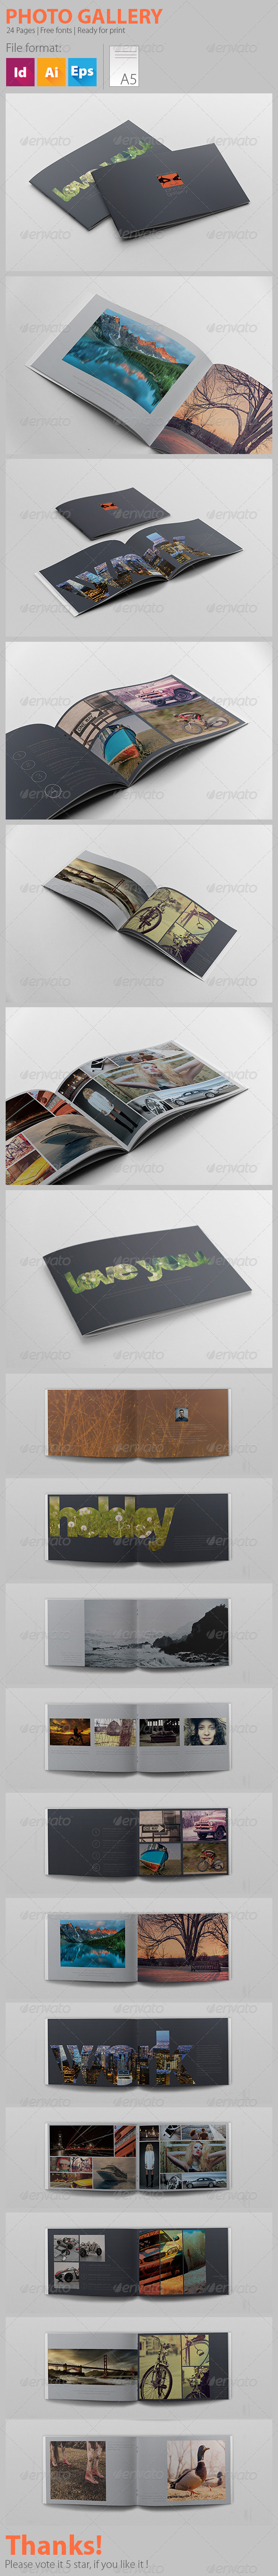 Photo Gallery - Brochures Print Templates